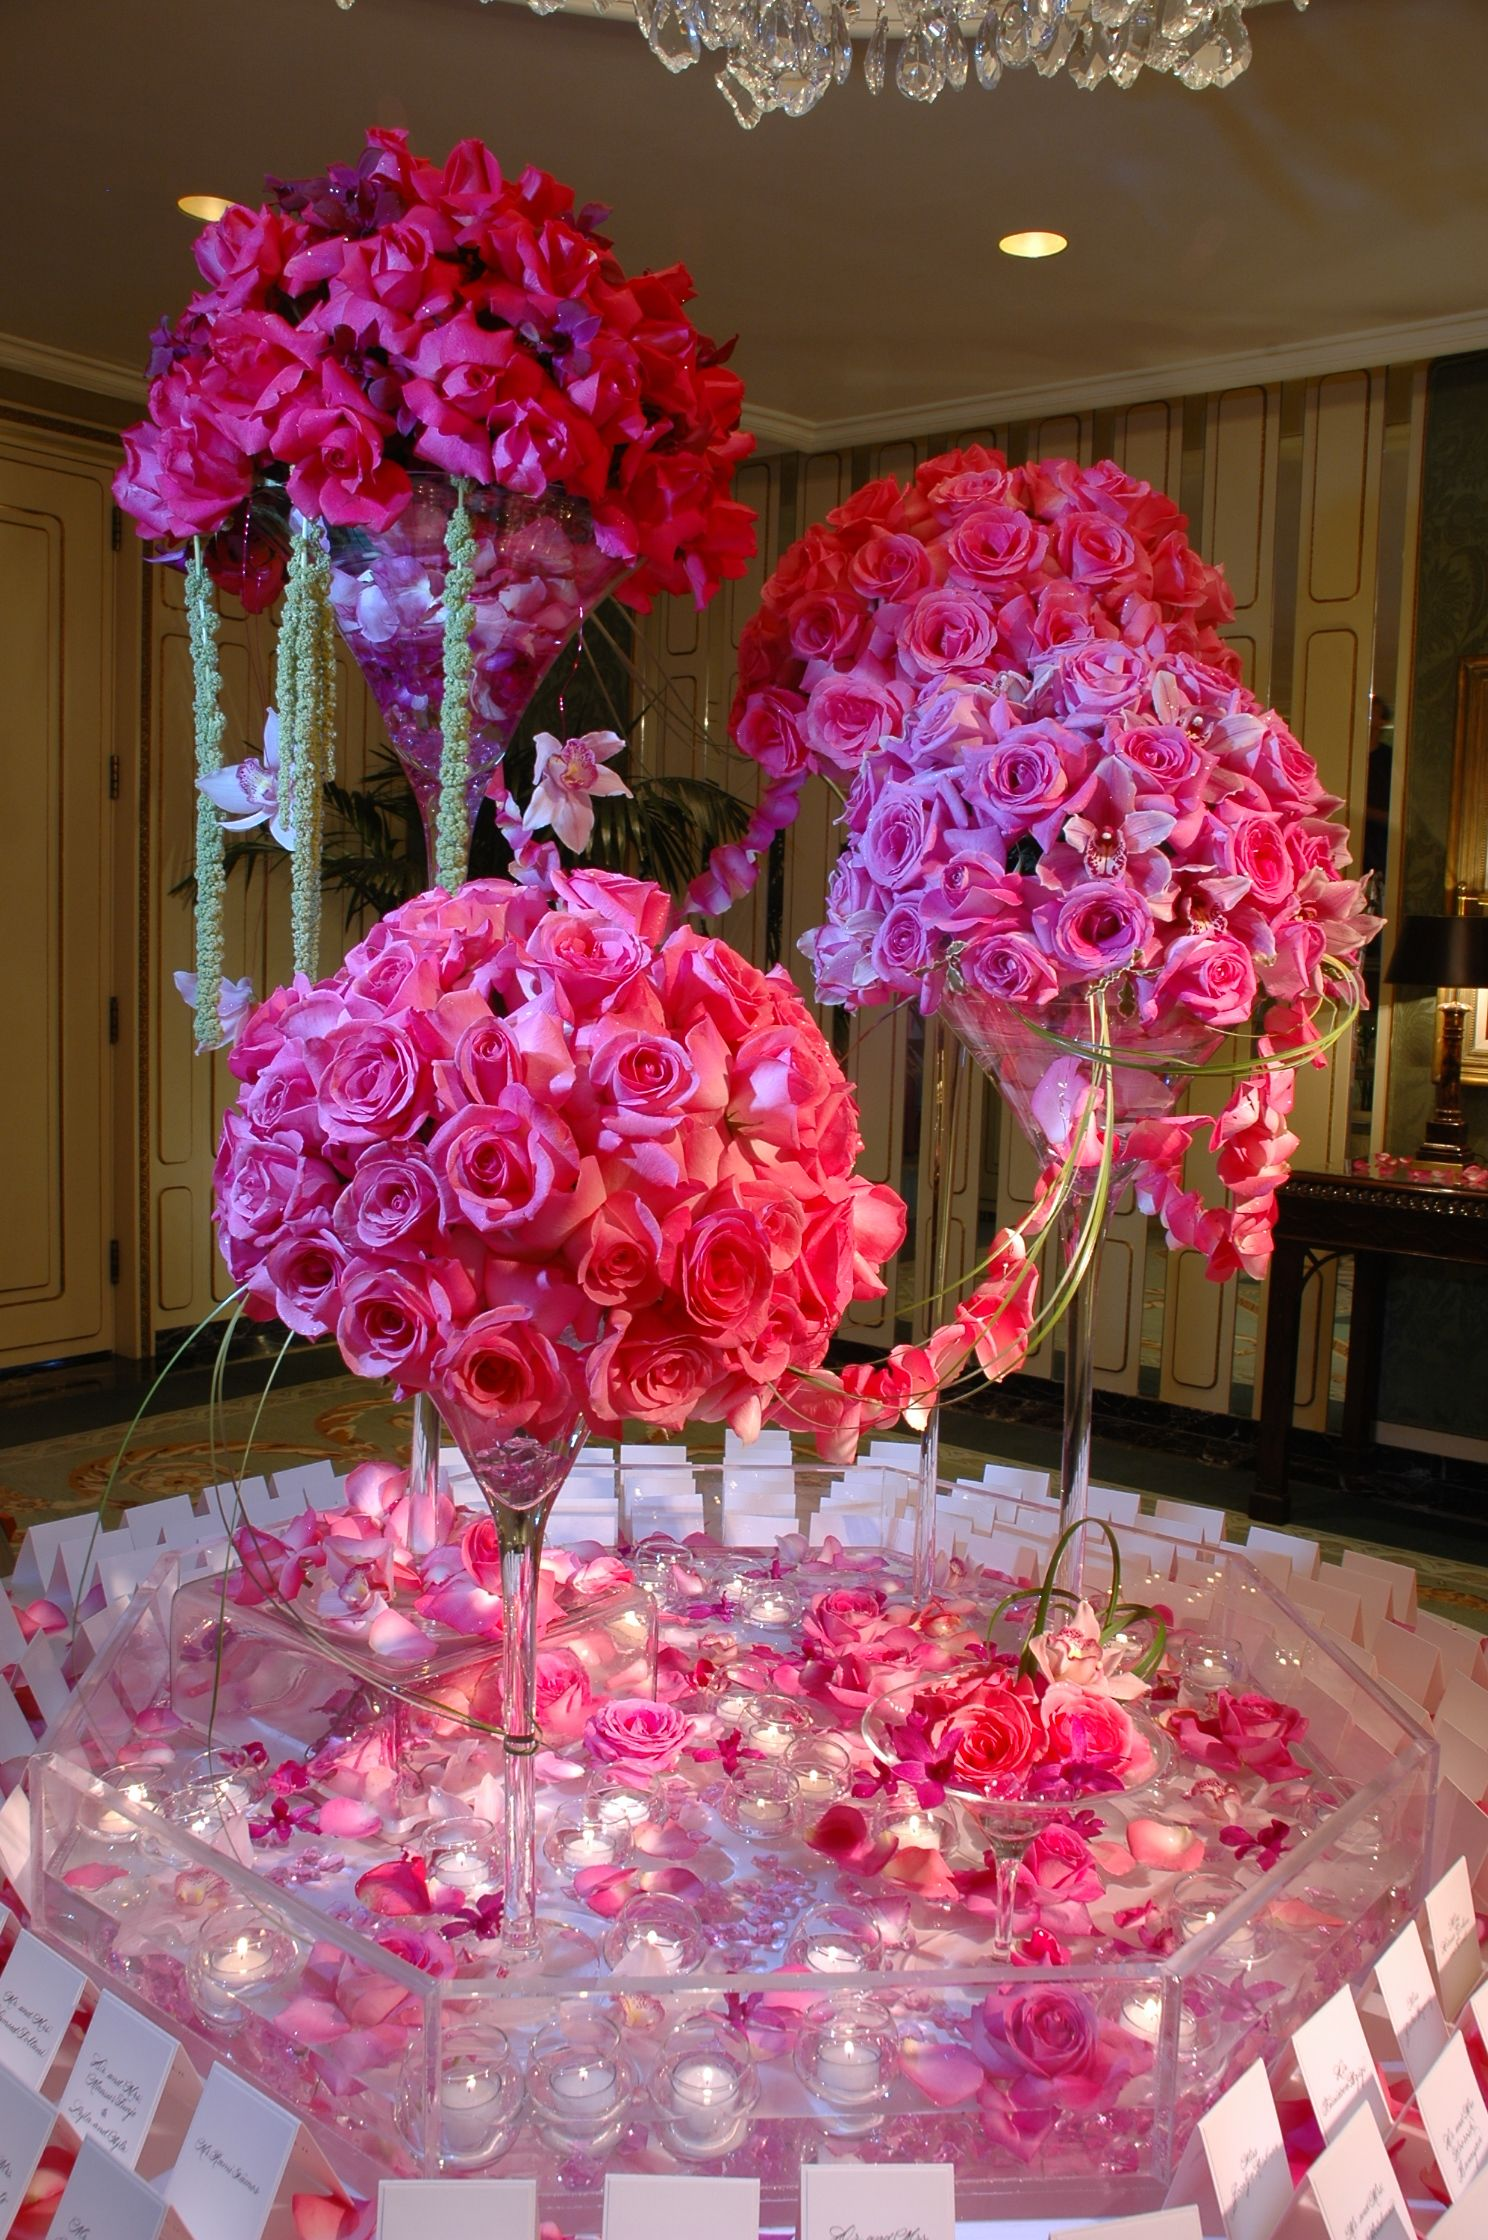 Wedding Flowers and Decorations | yanni | Pinterest | Rose ...